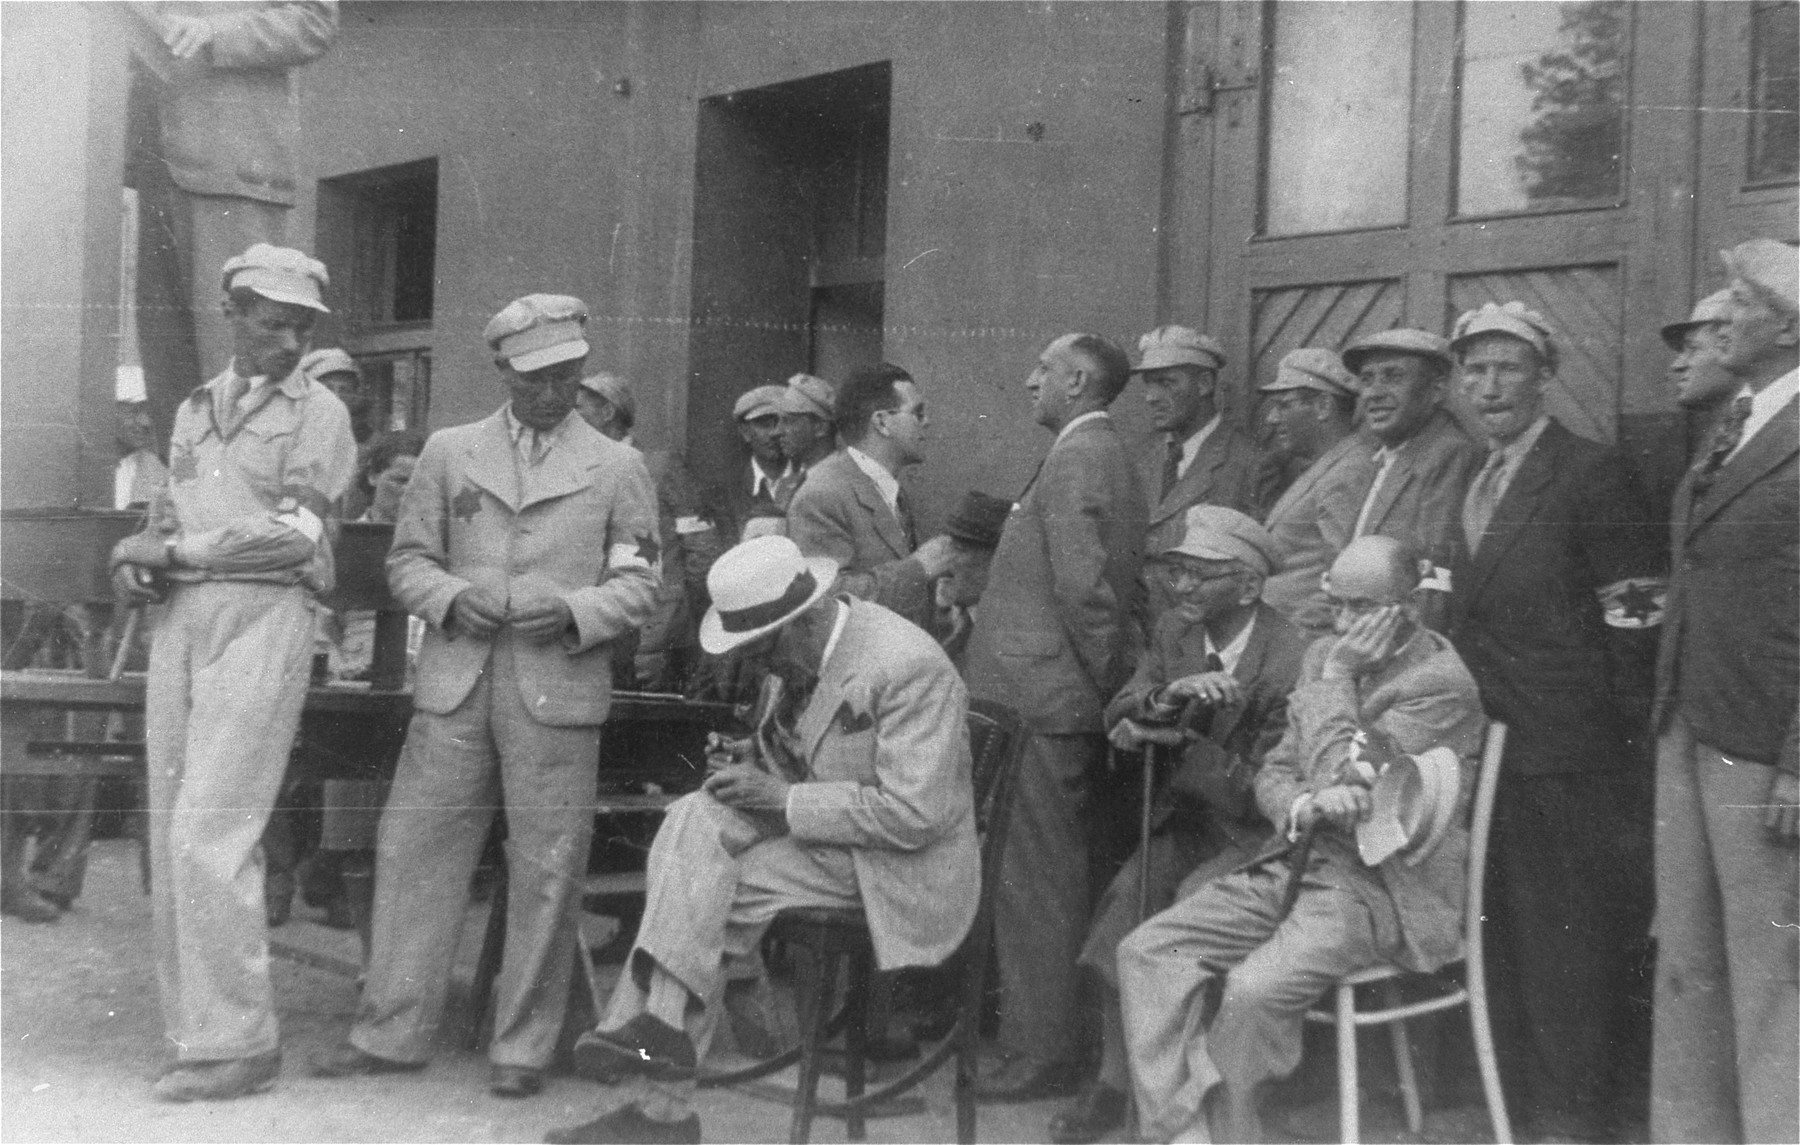 Mordechai Chaim Rumkowski (seated in the center), attends an event with members of the Jewish police and Sonderkommando.  Also pictured is Leon Rozenblat (seated at the right, holding his cap).  The man behind Rumkowski may be Stanislaw Jakobson.